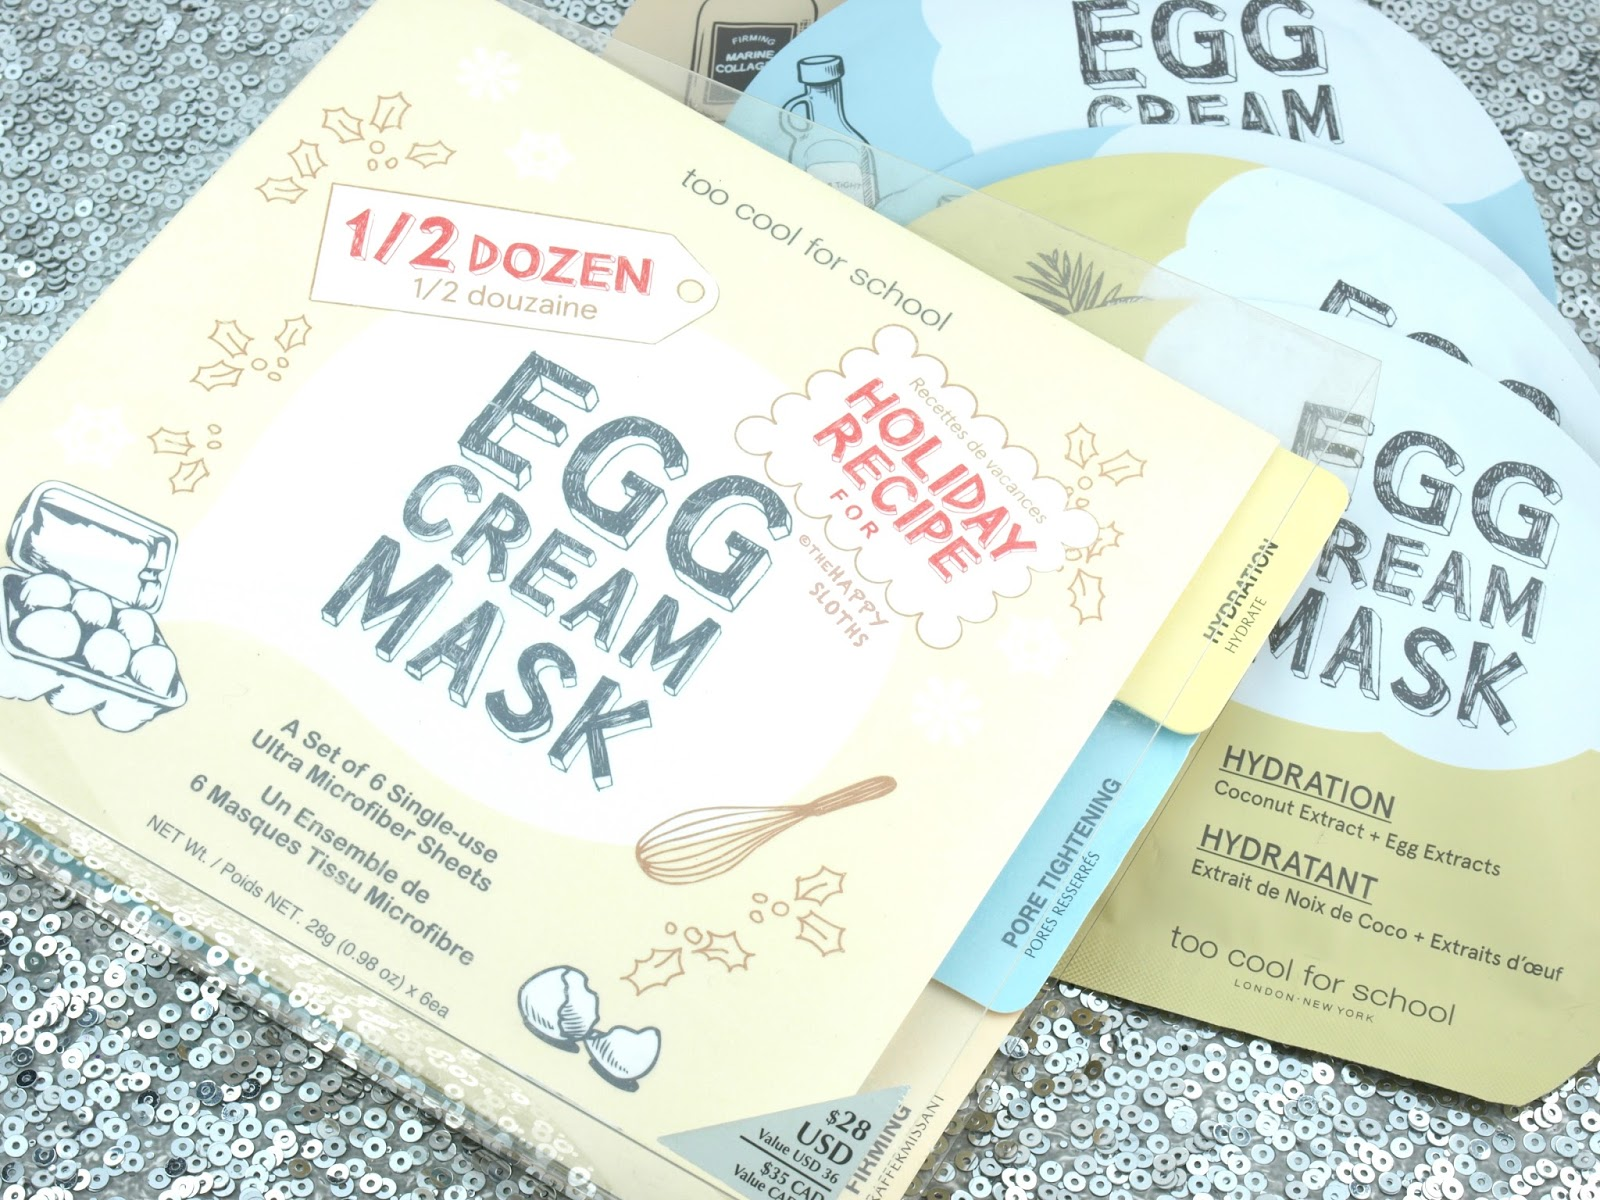 Too Cool for School 1/2 Dozen Egg Cream Mask Set